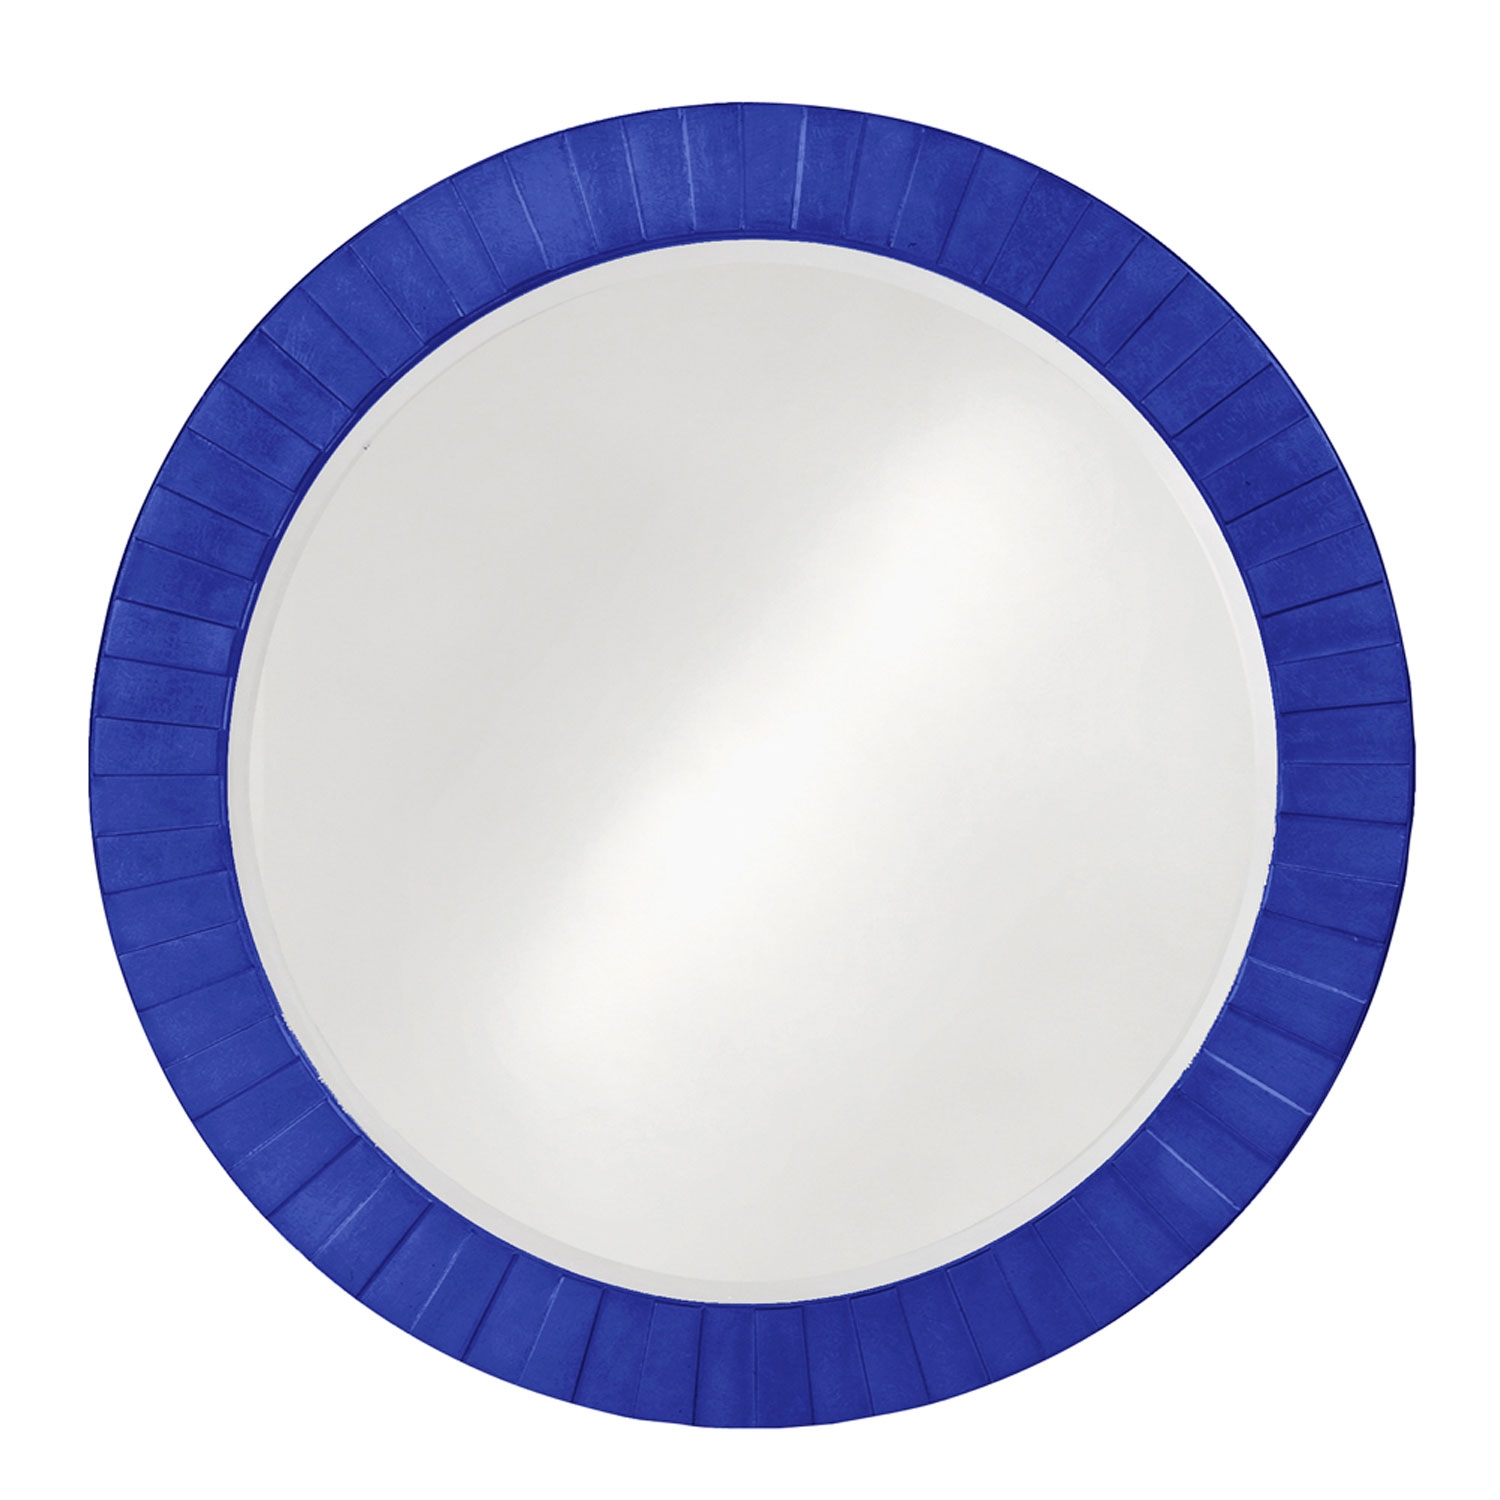 Serenity Royal Blue Round Mirror Howard Elliott Collection Round Regarding Blue Round Mirror (Image 13 of 15)